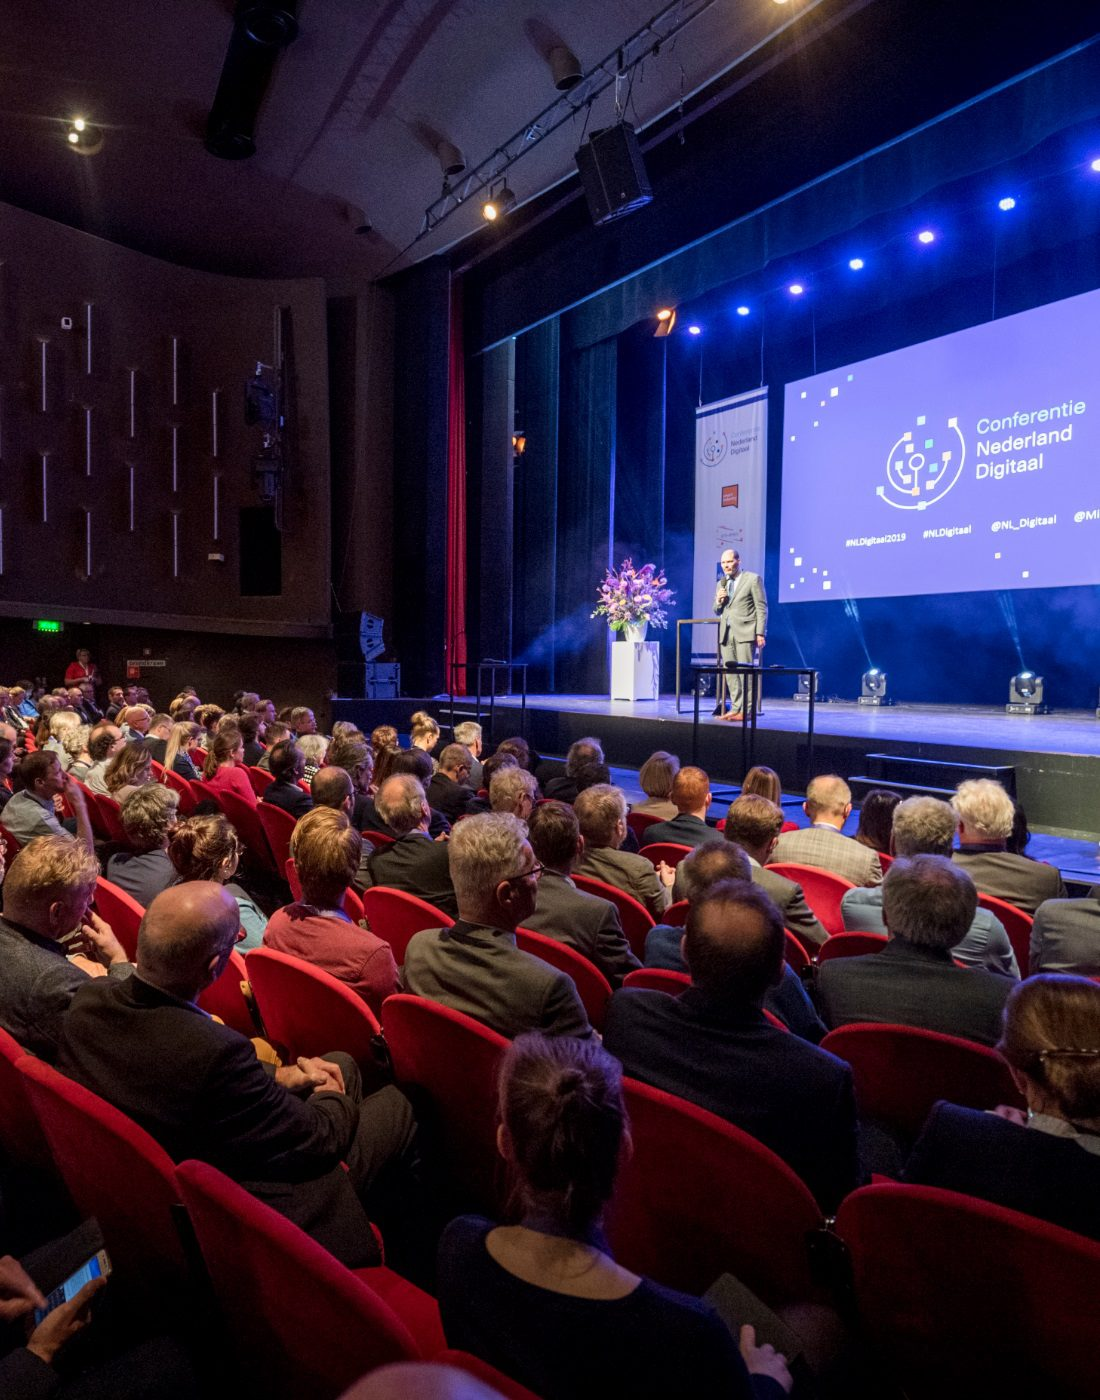 Congres in Gooiland Theater evenementenlocatie